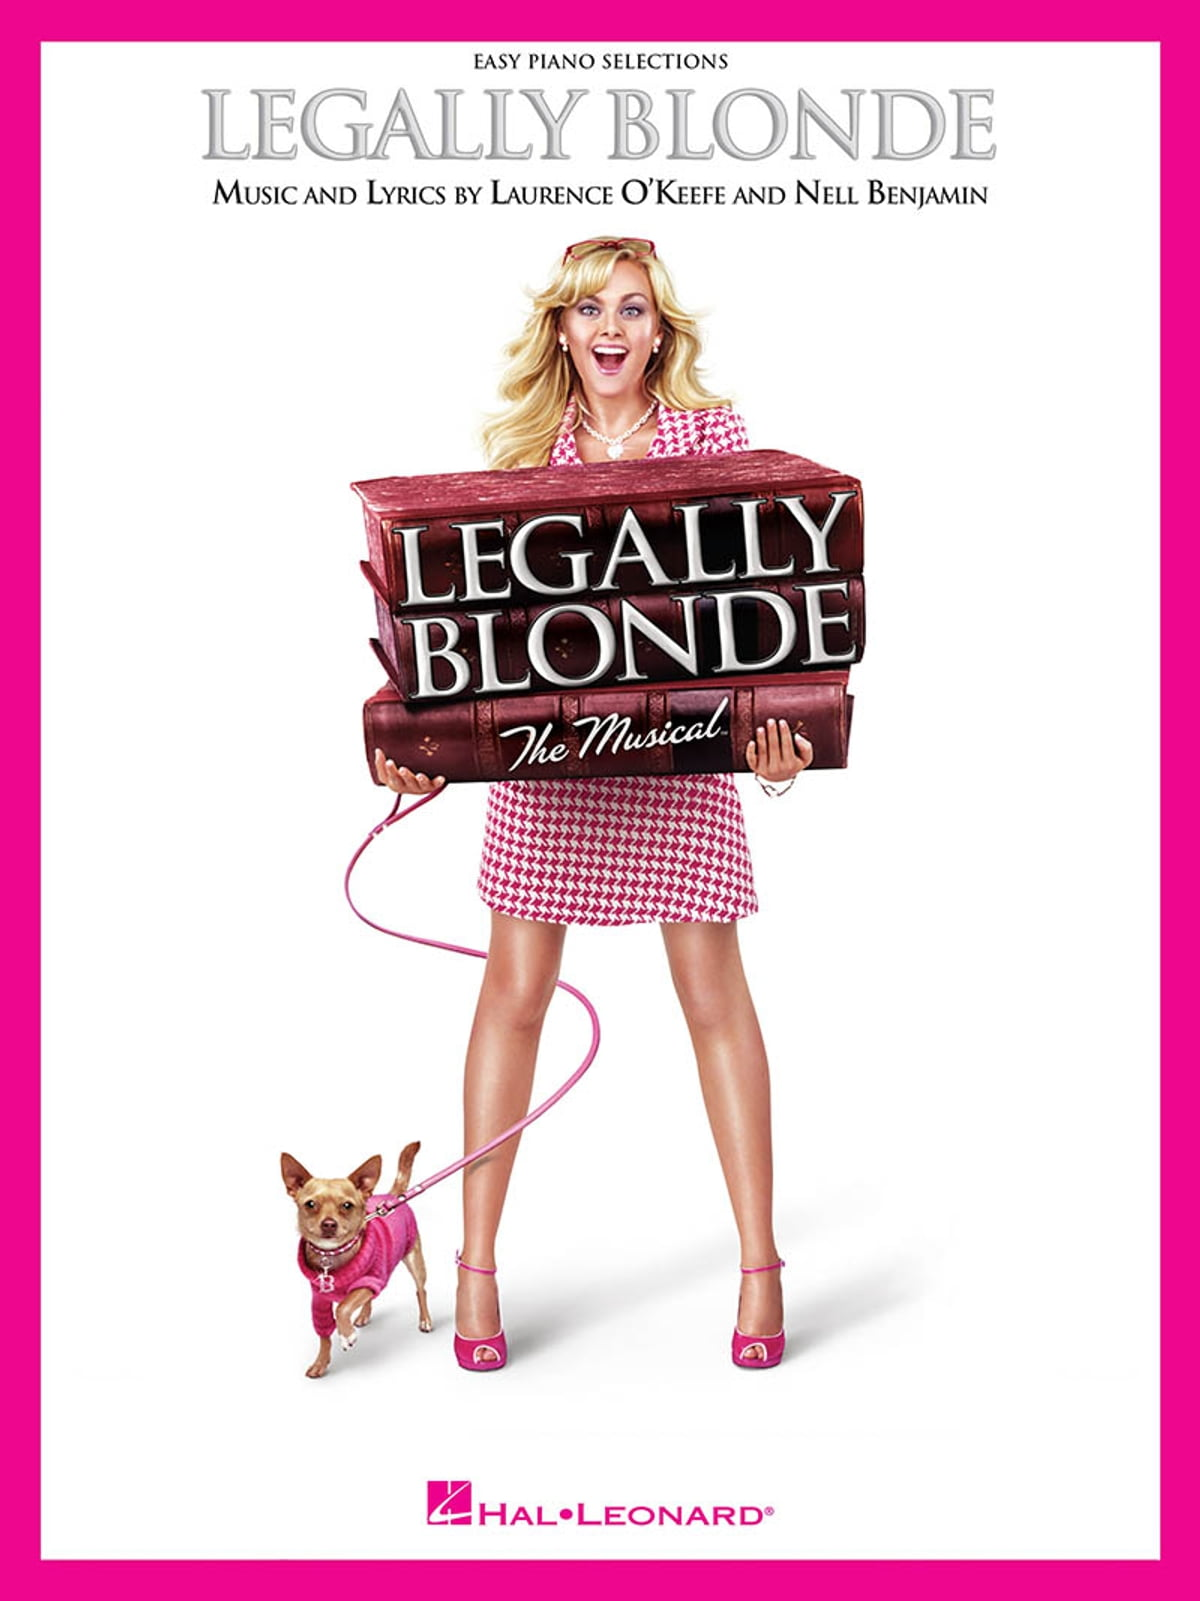 Legally blonde the musical movie — photo 1